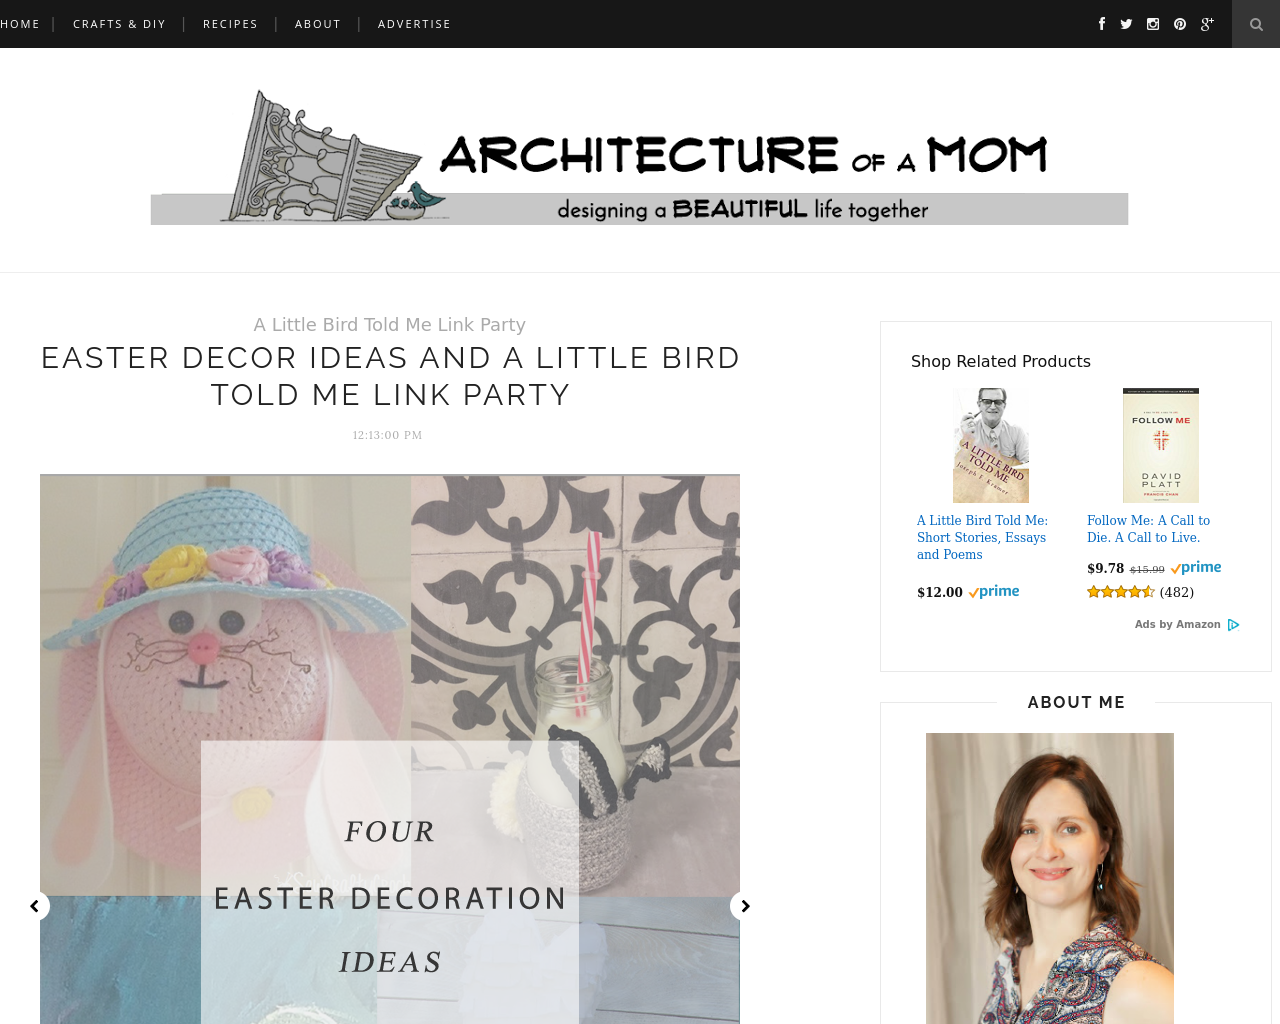 Architecture-Of-A-Mom-Advertising-Reviews-Pricing